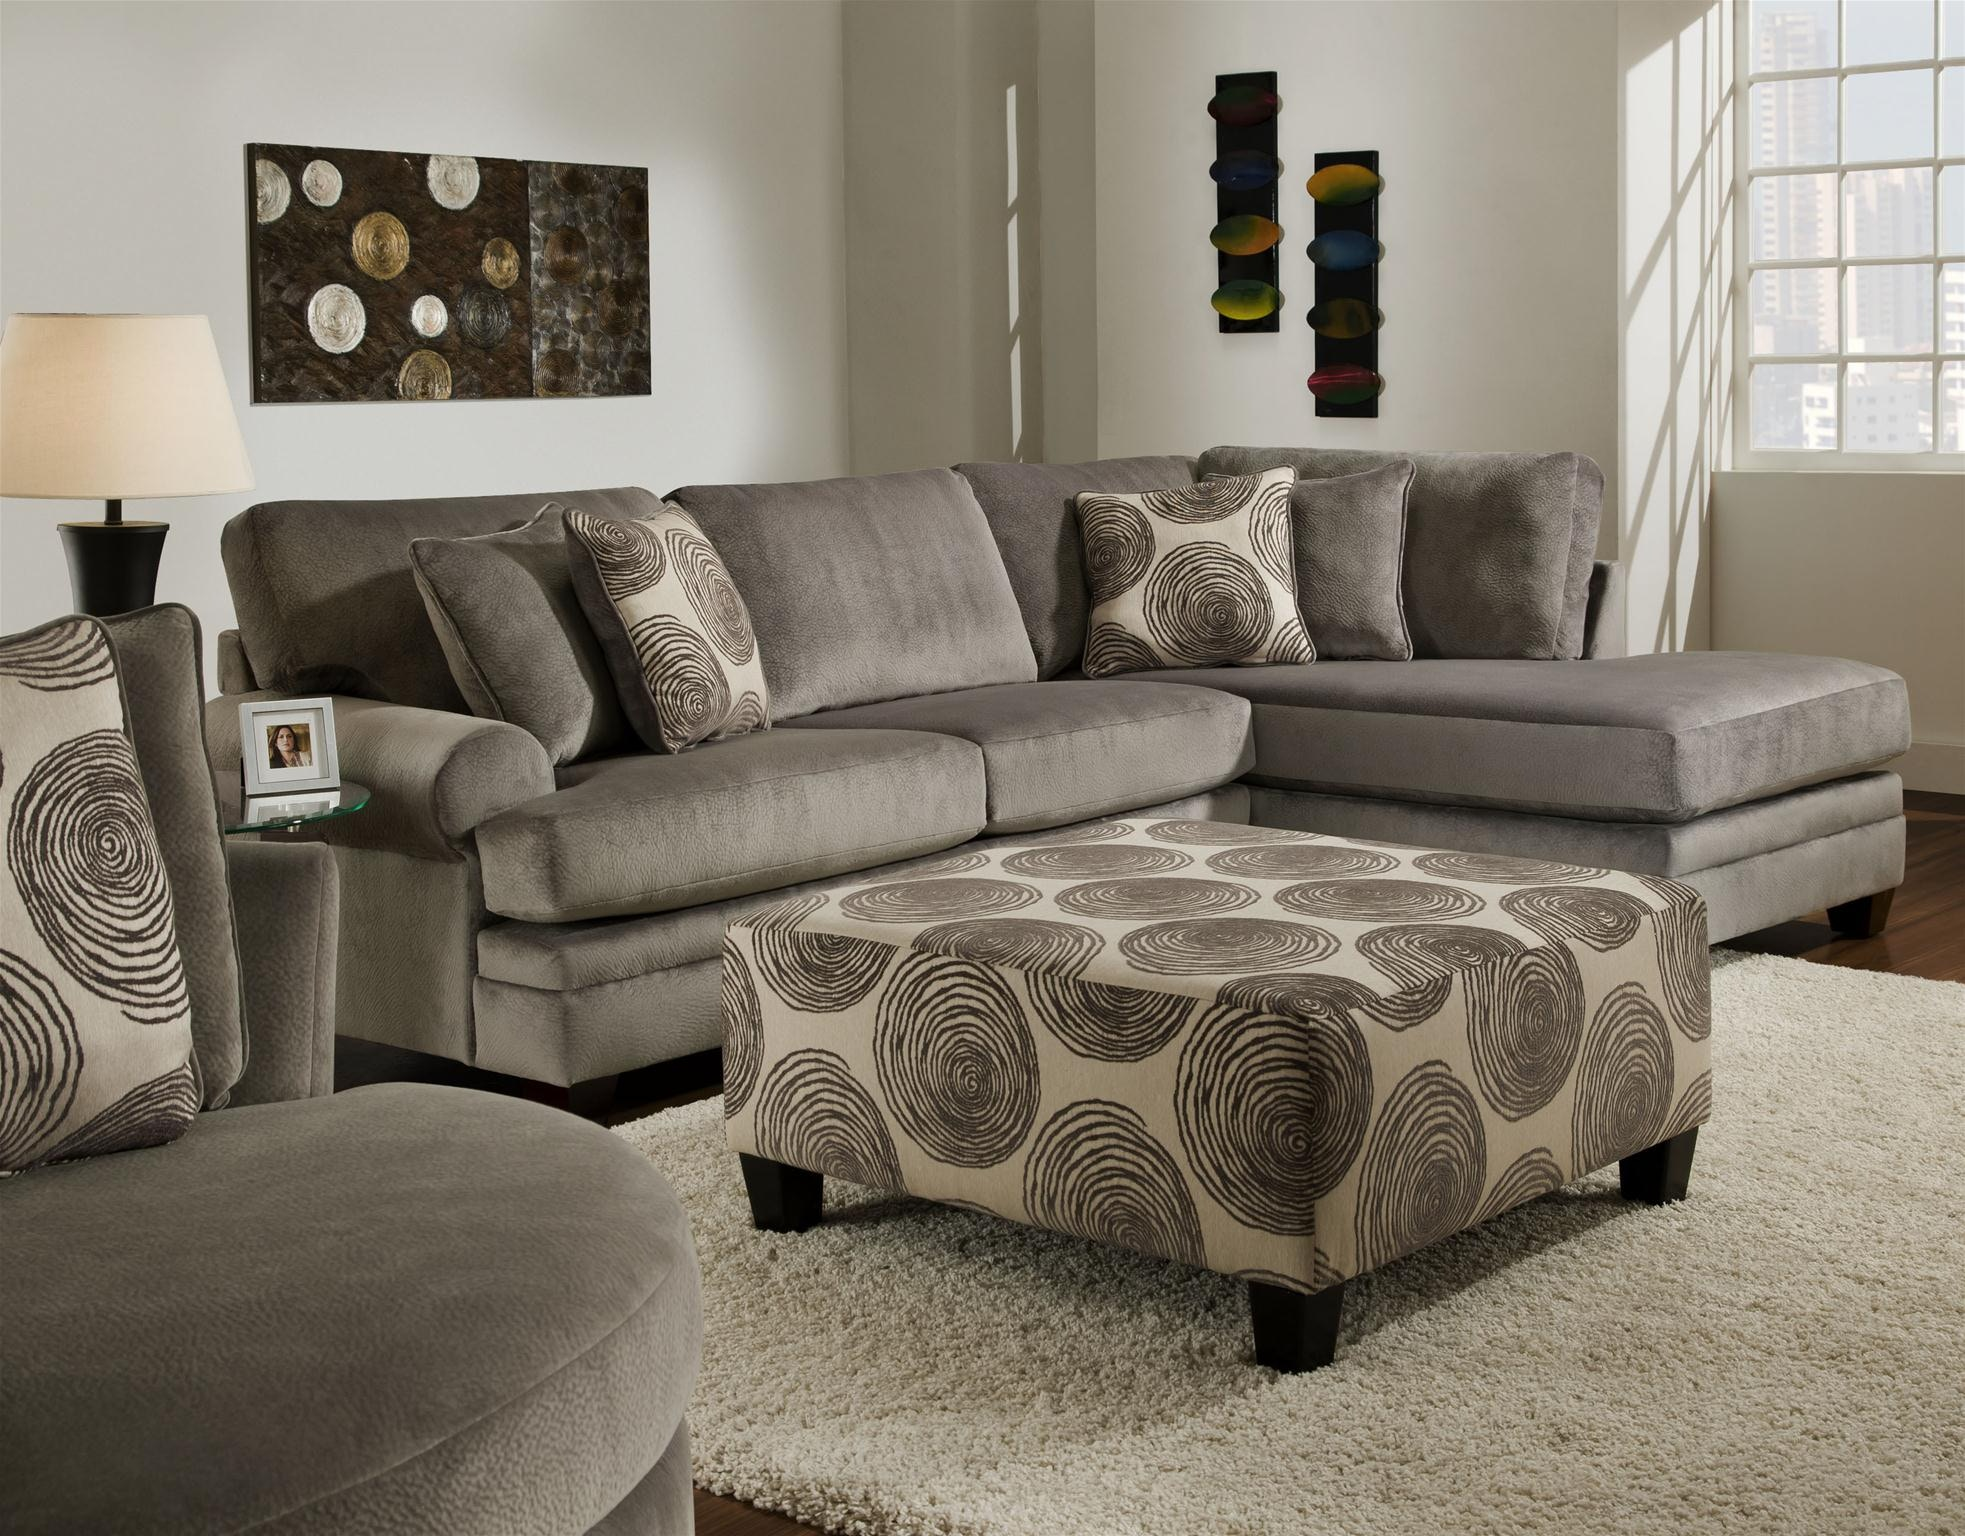 Captivating Albany Groovy Smoke 2PC Sectional 6309940 2PC At Gustafsonu0027s Furniture And  Mattress